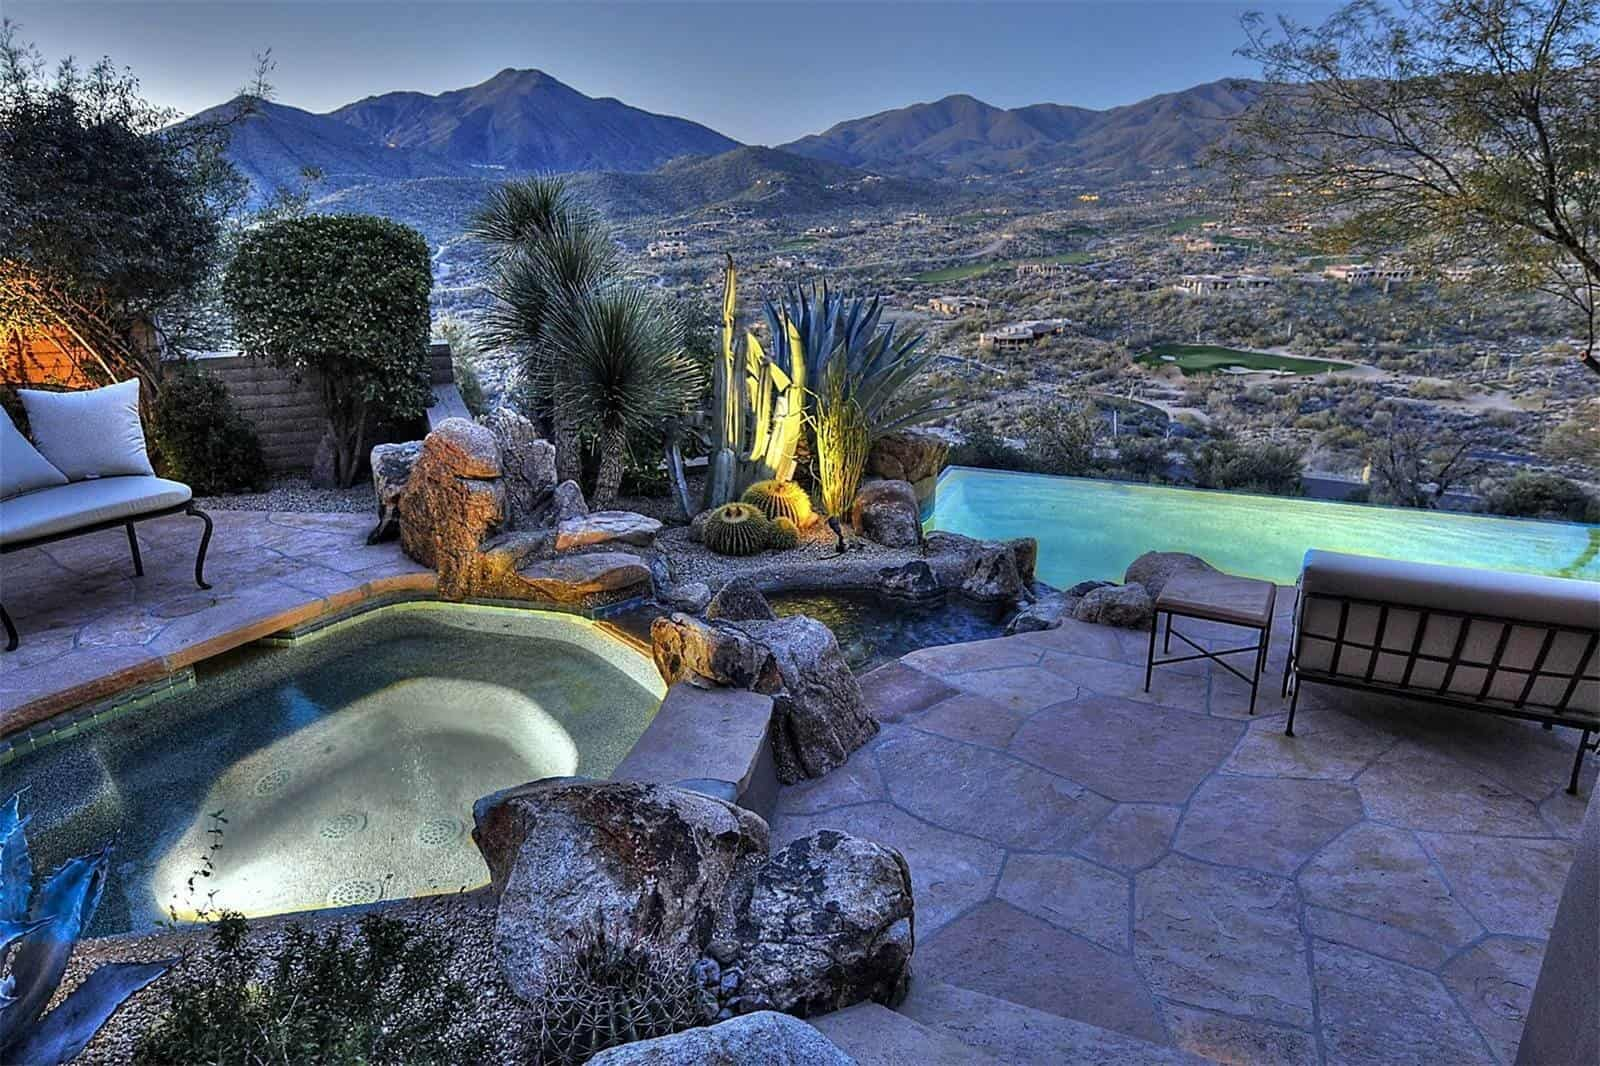 Arizona Desert Home Combines Waterscaping, Xeriscaping and ...